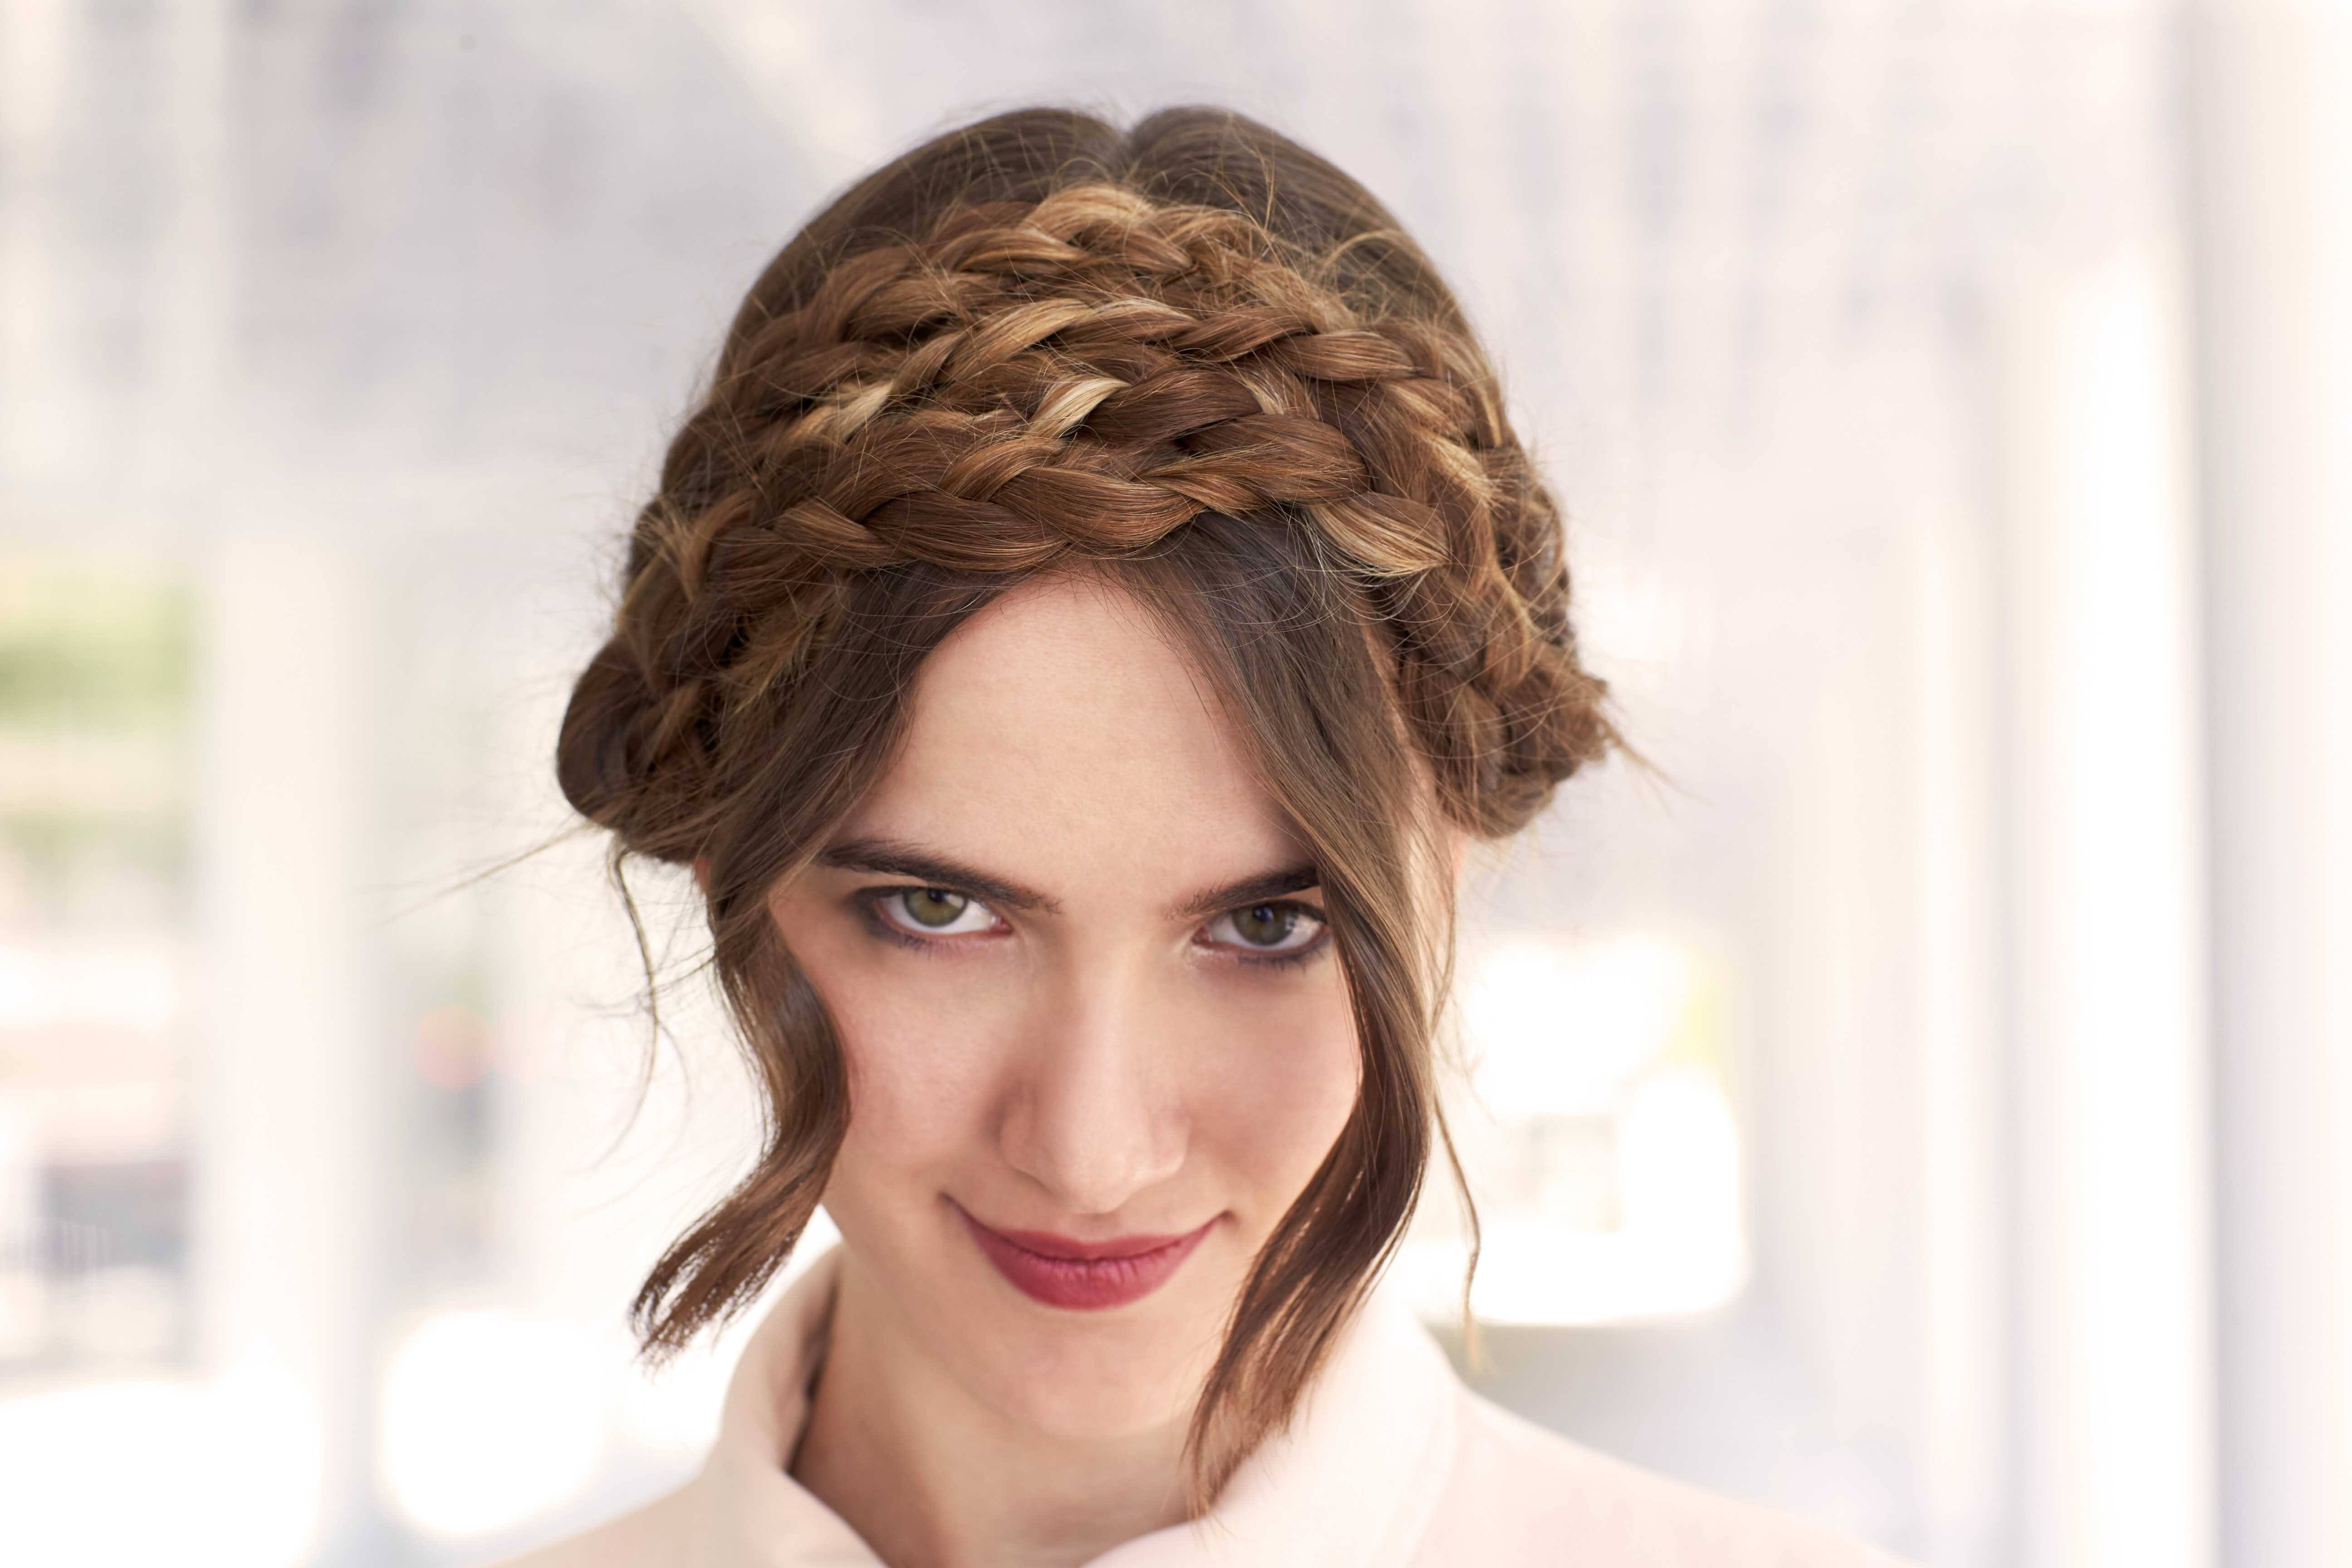 woman with milkmaid braids hairstyle and curly bangs